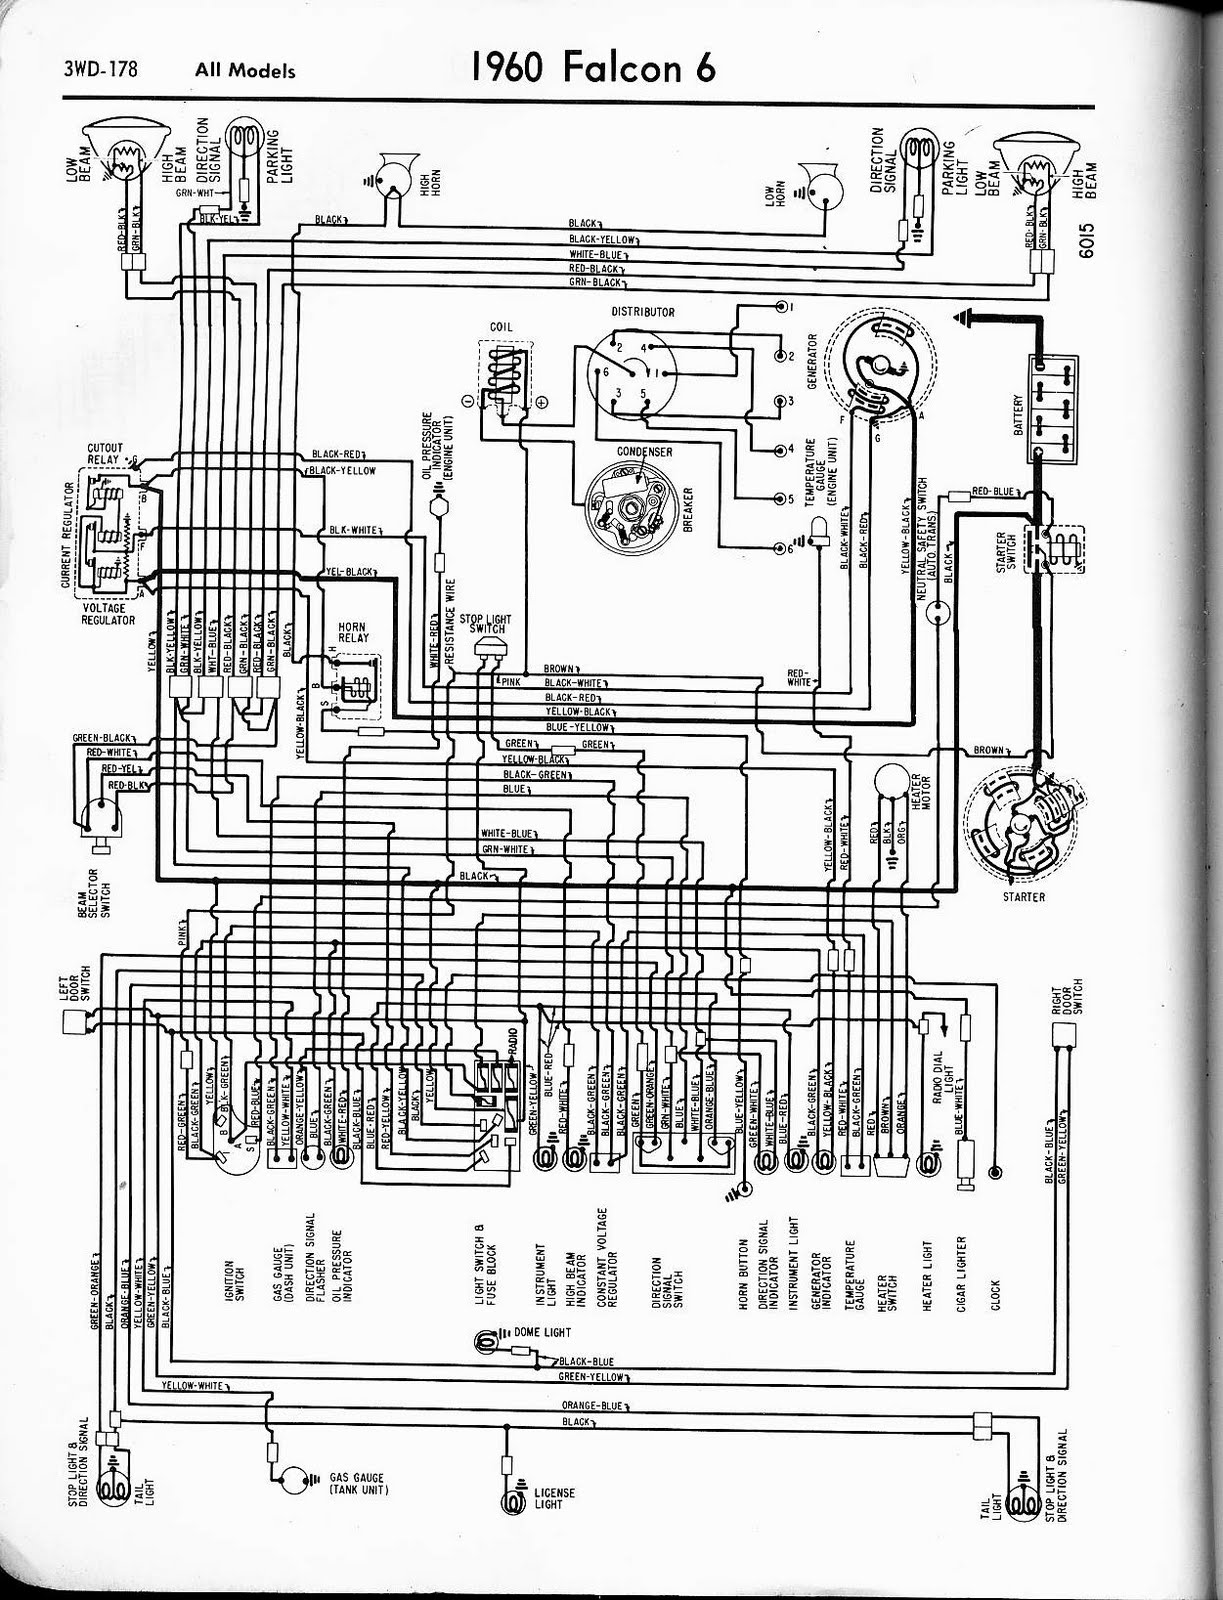 1958 Ford Ranchero Wiring Diagram Free Picture Blog About 1964 Thunderbird 1 Bp Blogspot Com Swyo99ox0b4 Tbw28fqhebi Aaaaaaa Truck Diagrams